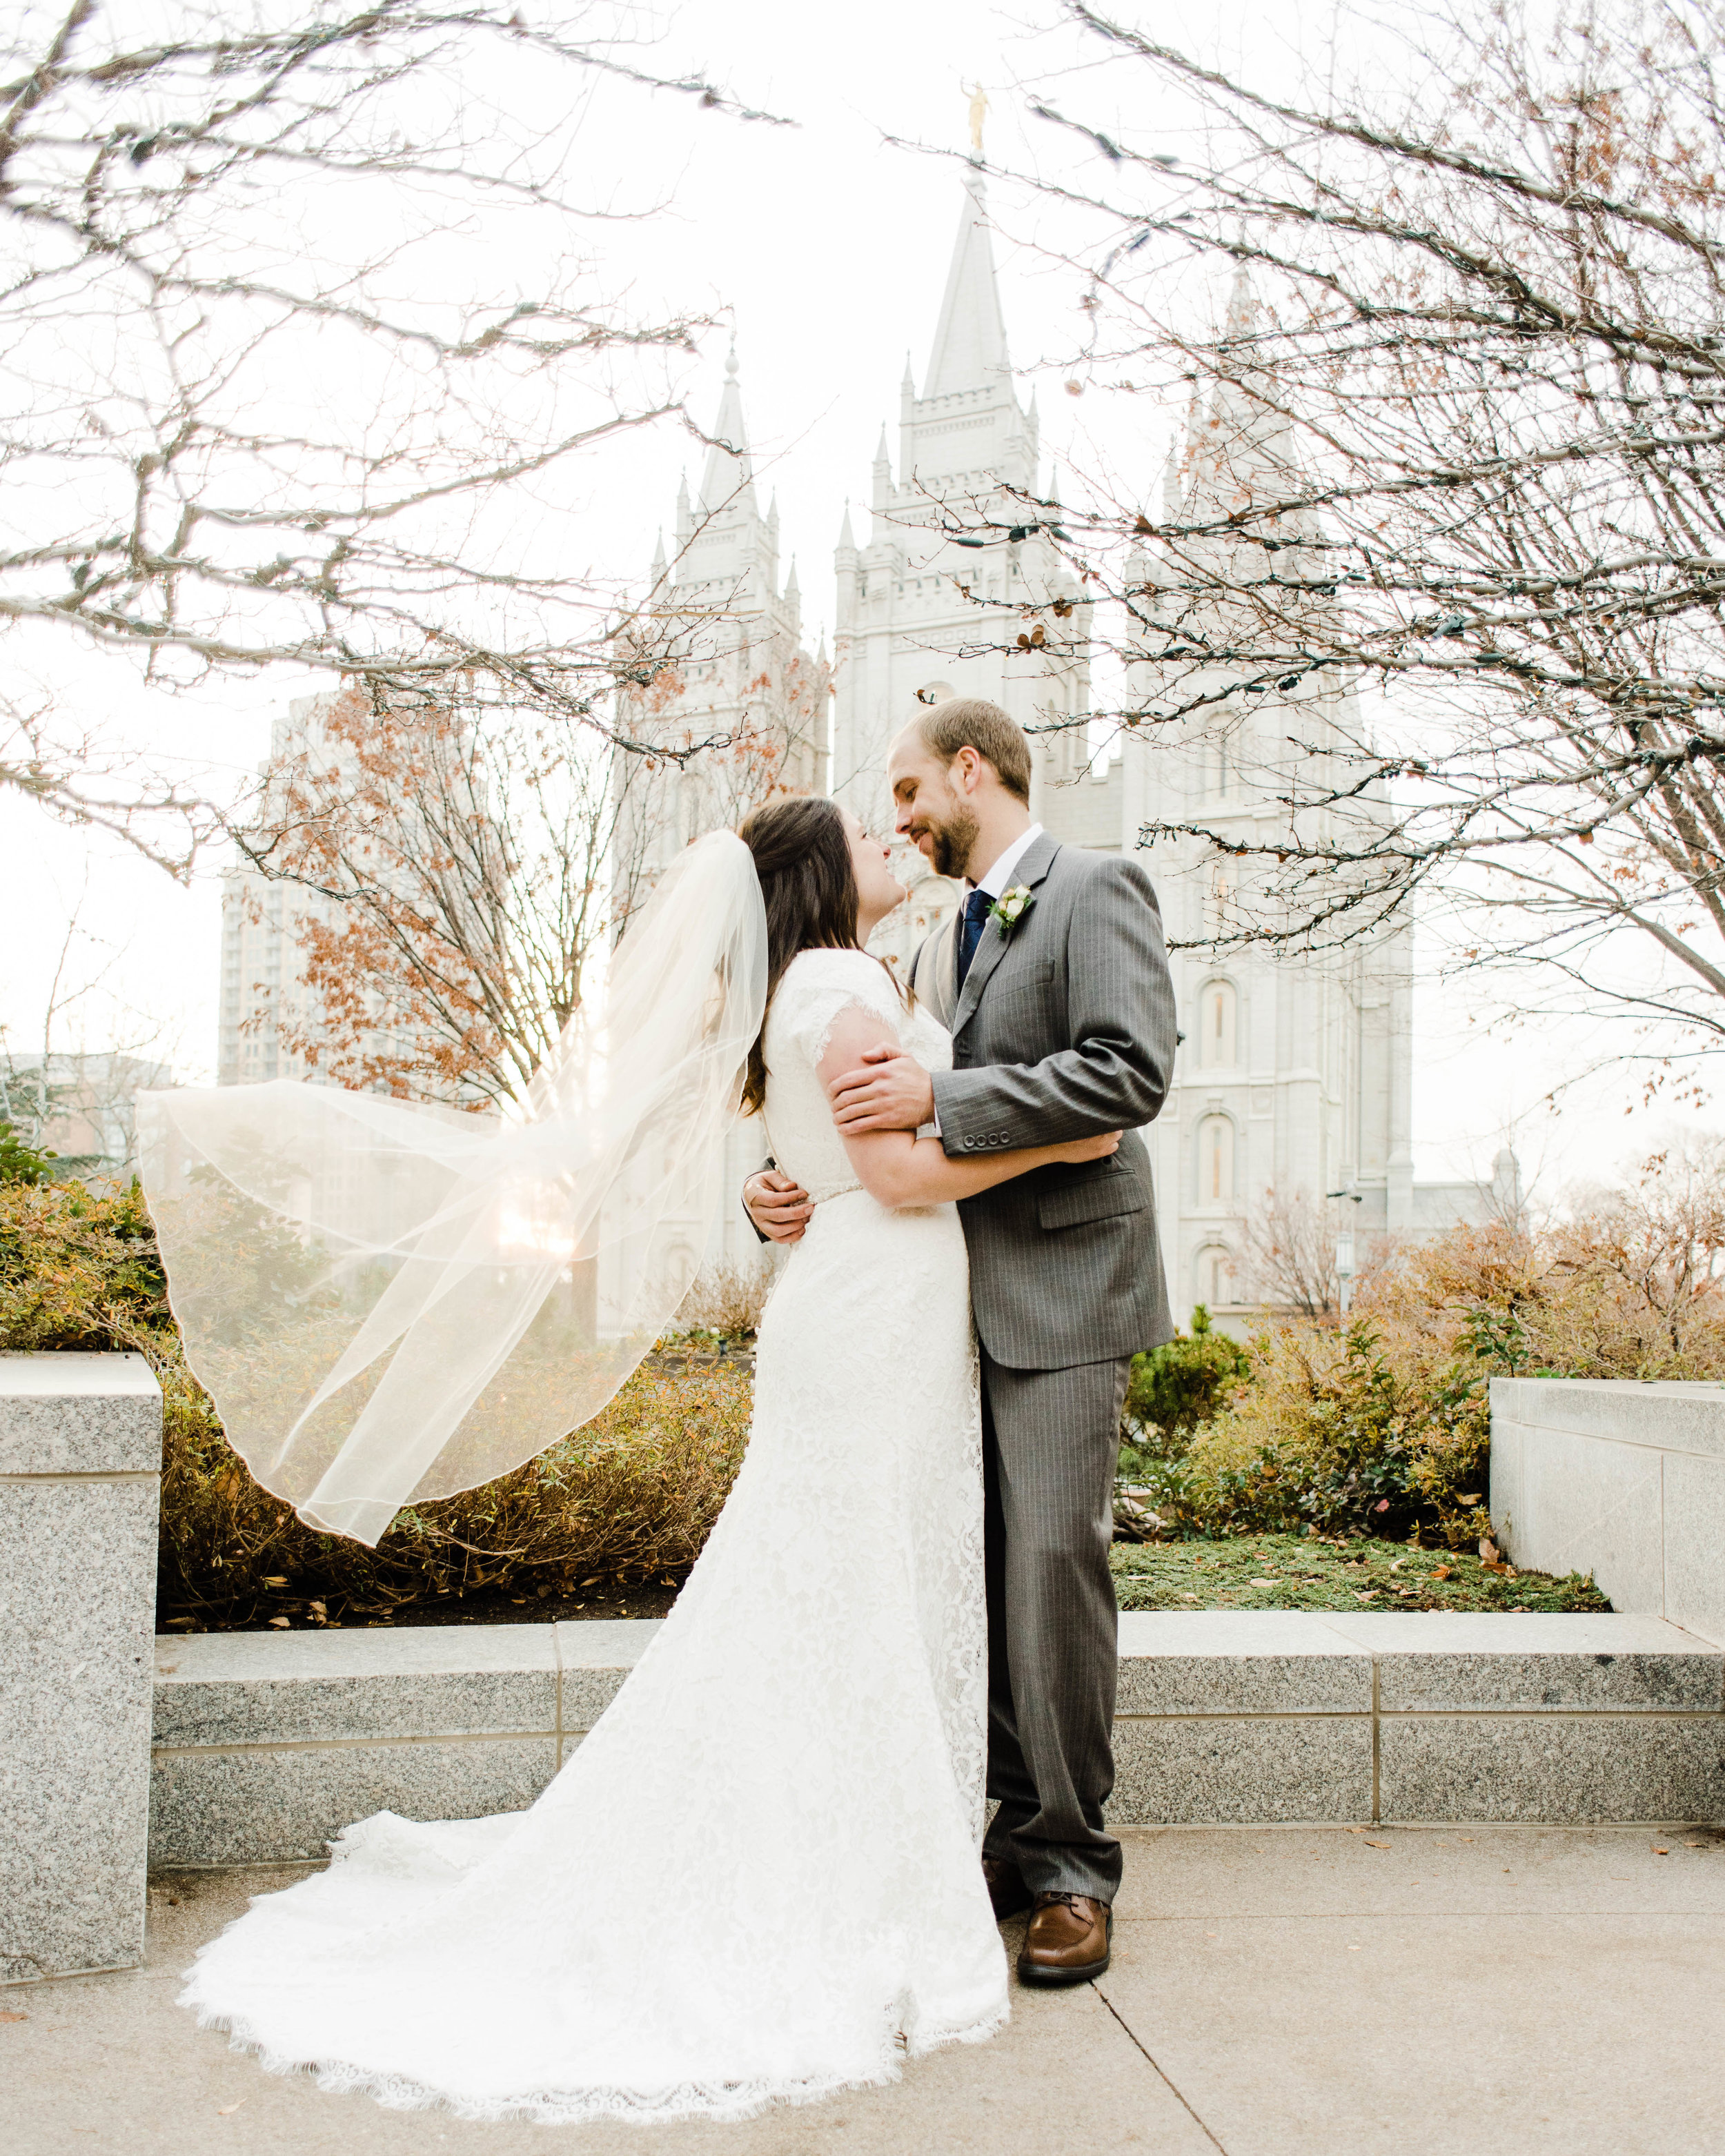 LINDSAY+BRAD-BRIDALS-Sadie_Banks_Photography-178.jpg